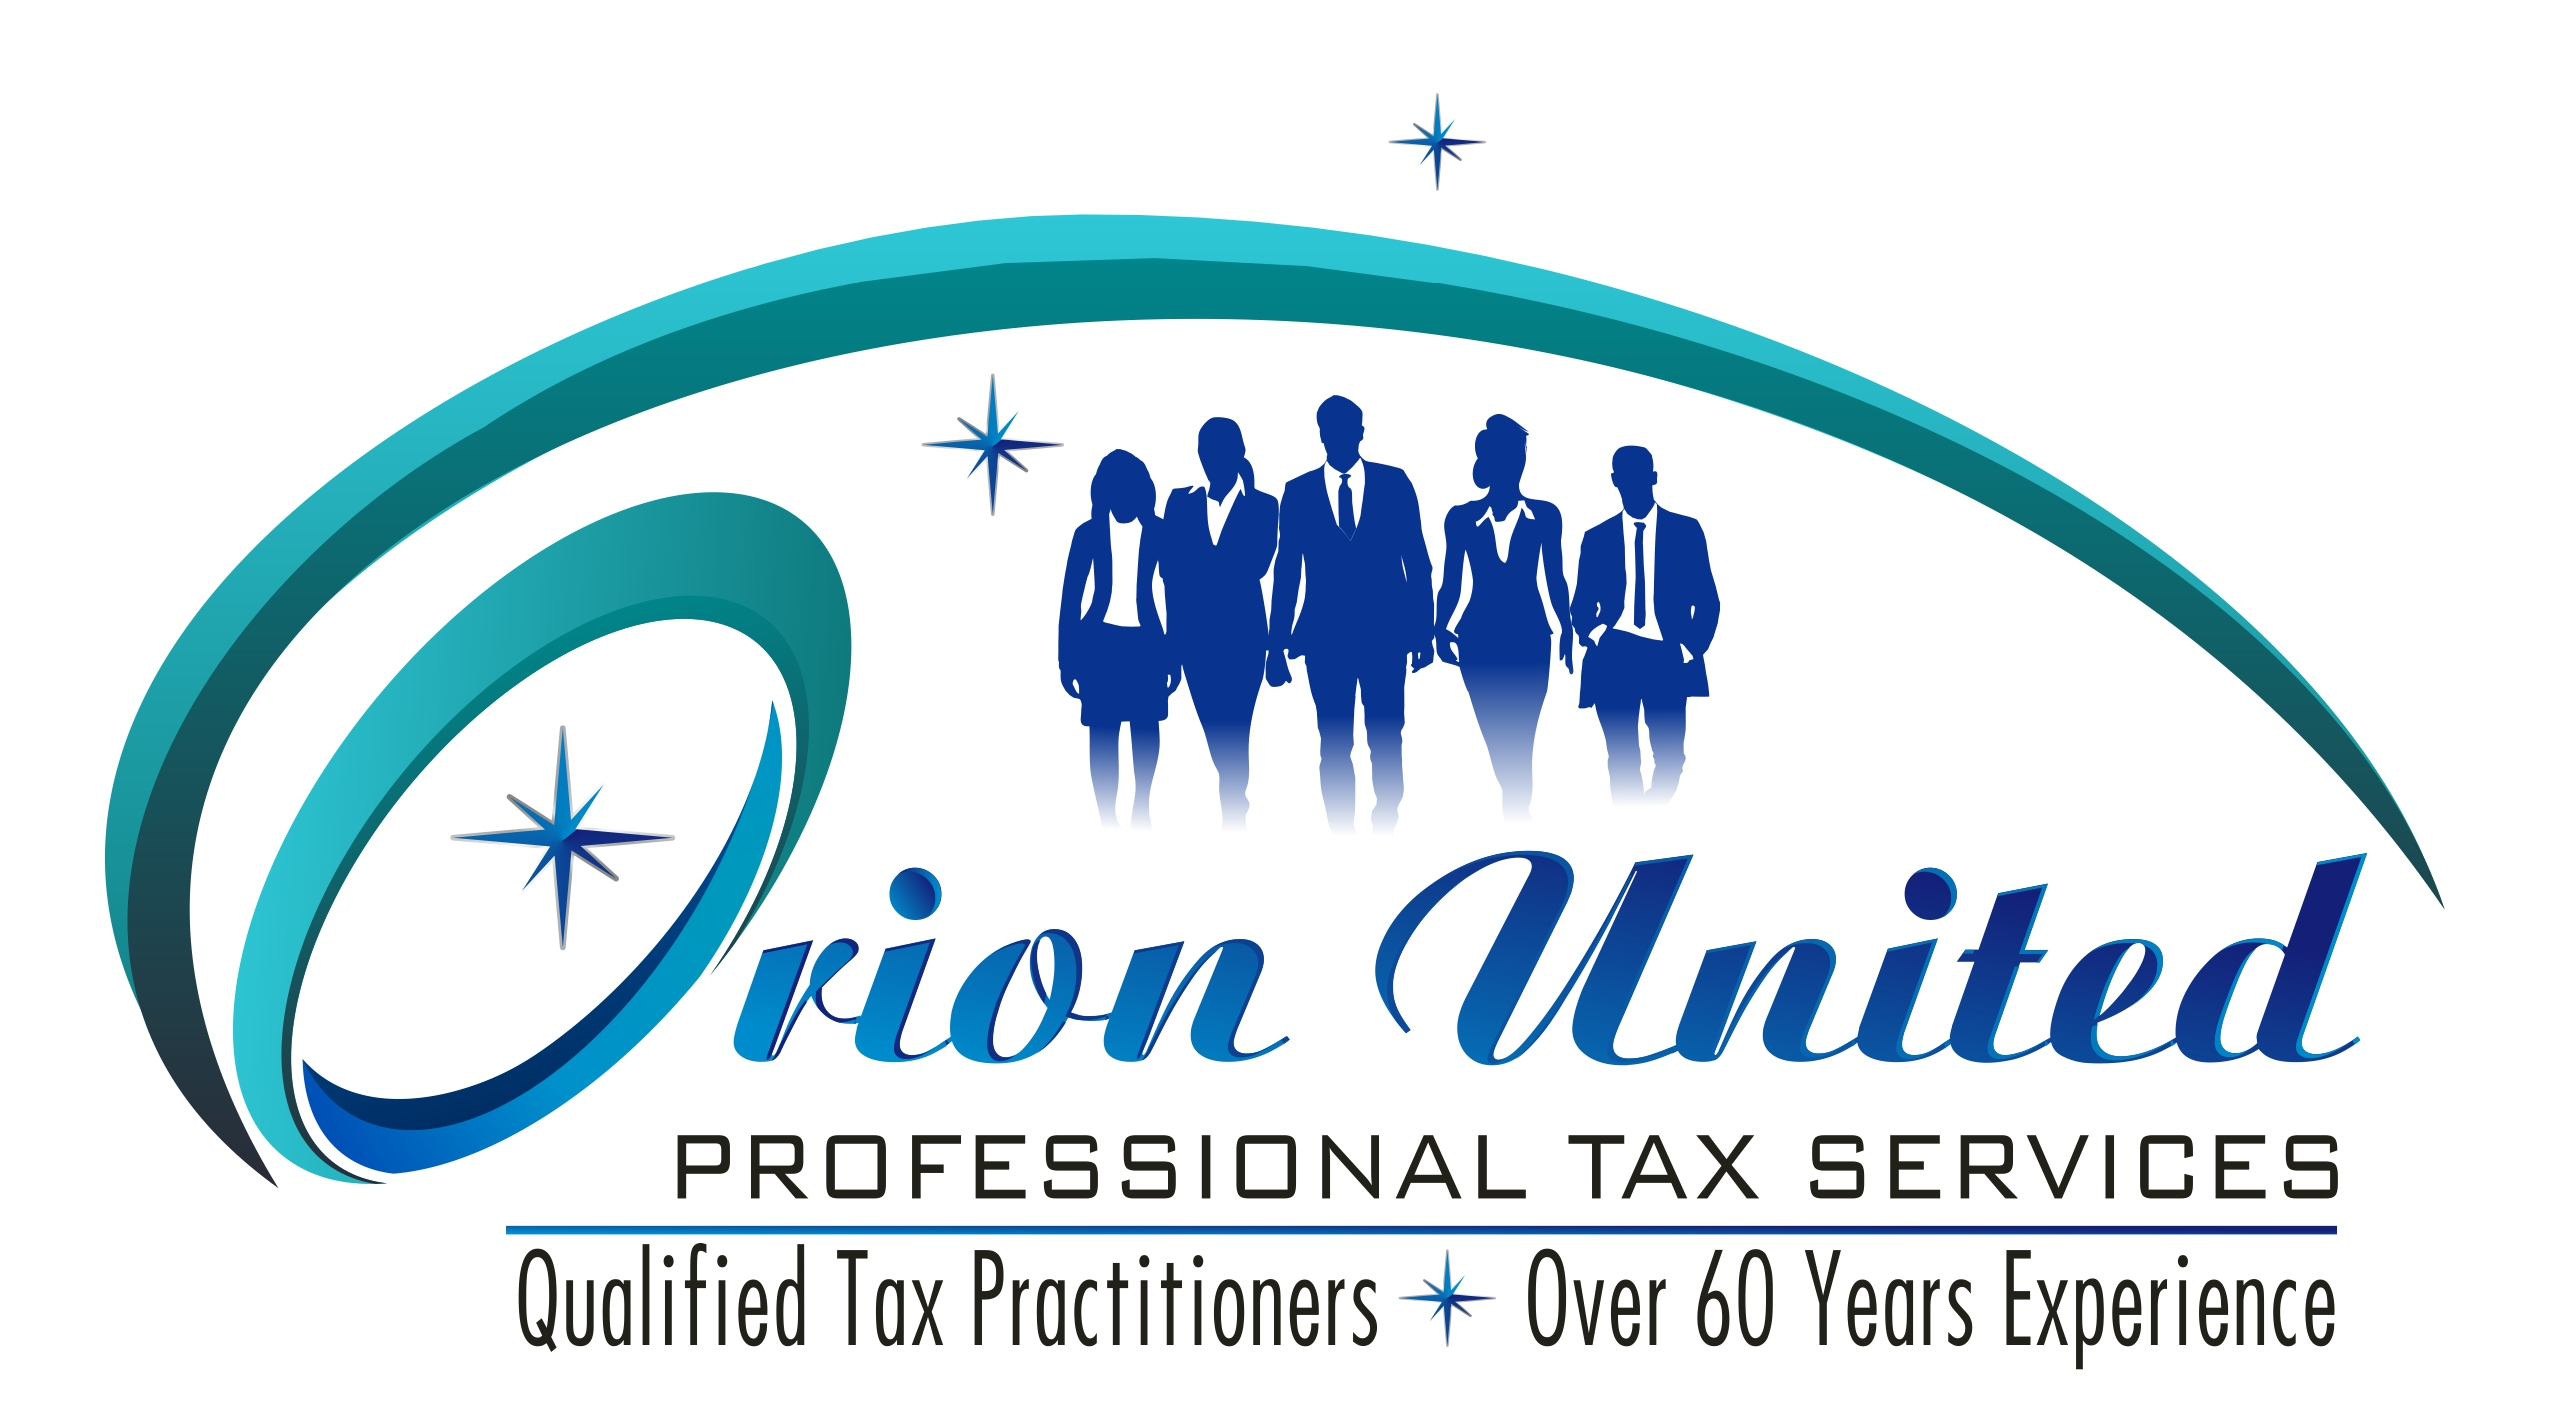 Orion United